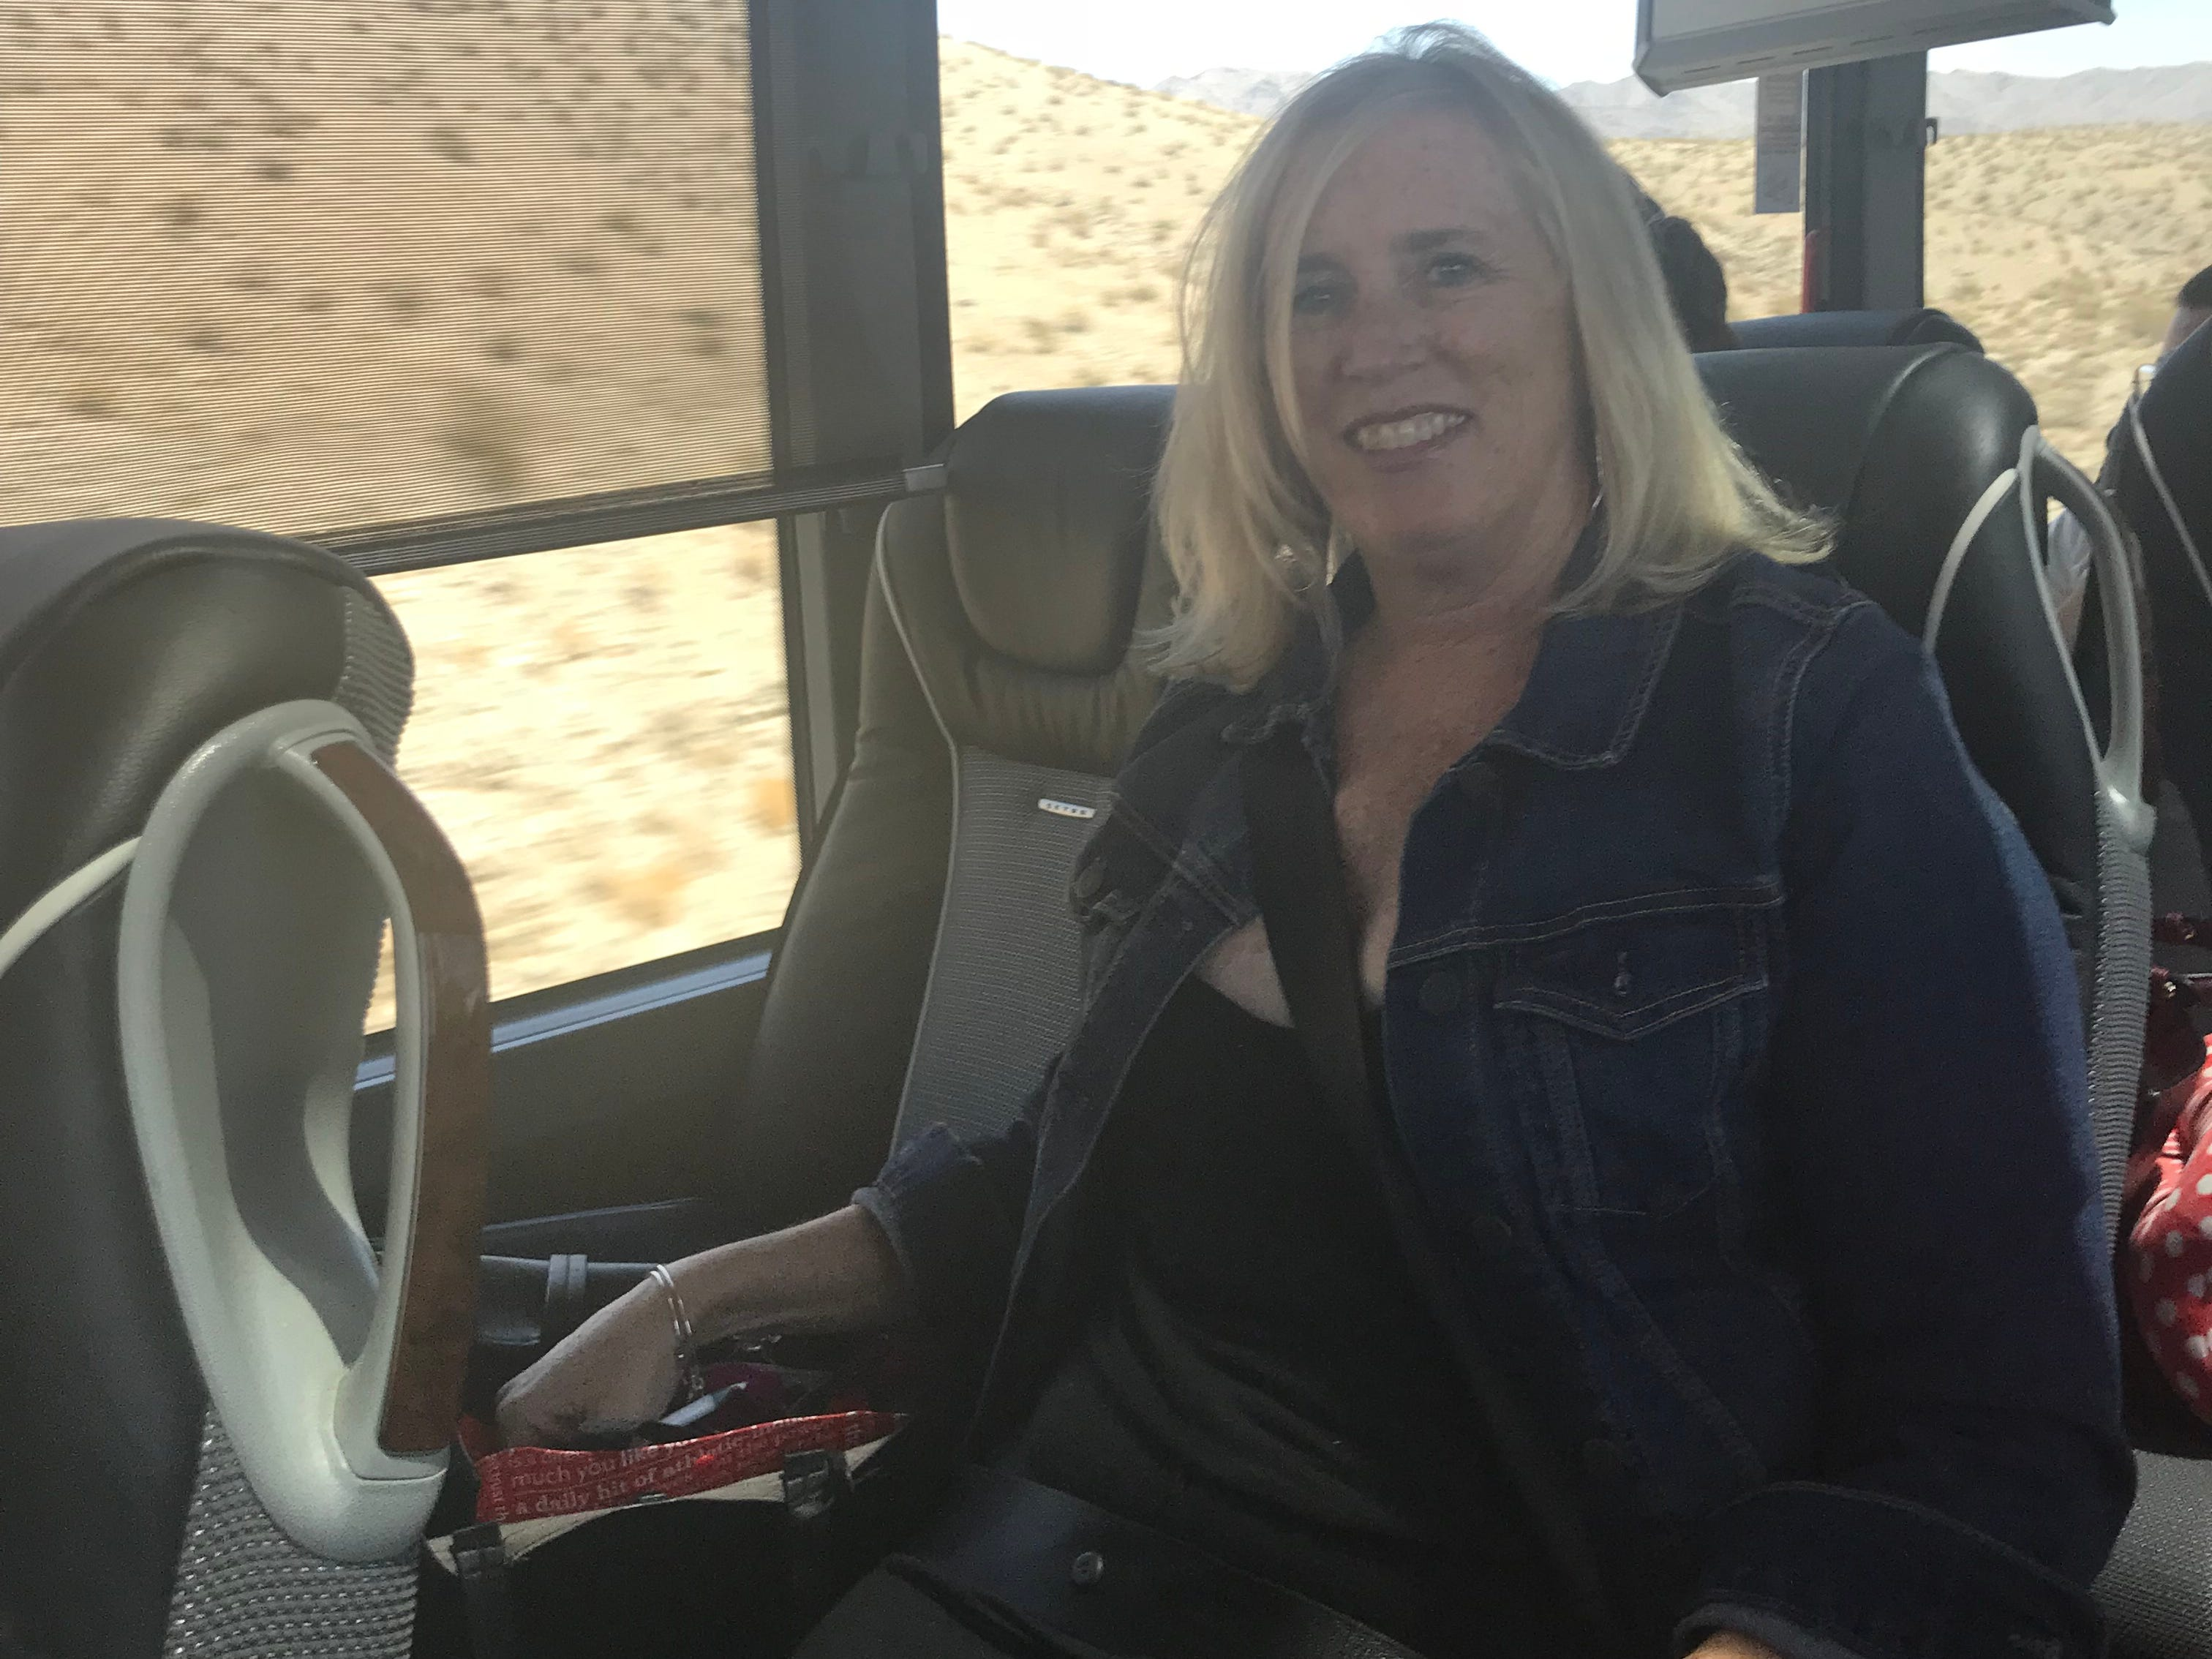 Dawn Gilbertson, travel reporter for the Arizona Republic and AZCentral.com, on a FlixBus from Phoenix to Las Vegas in August 2018.